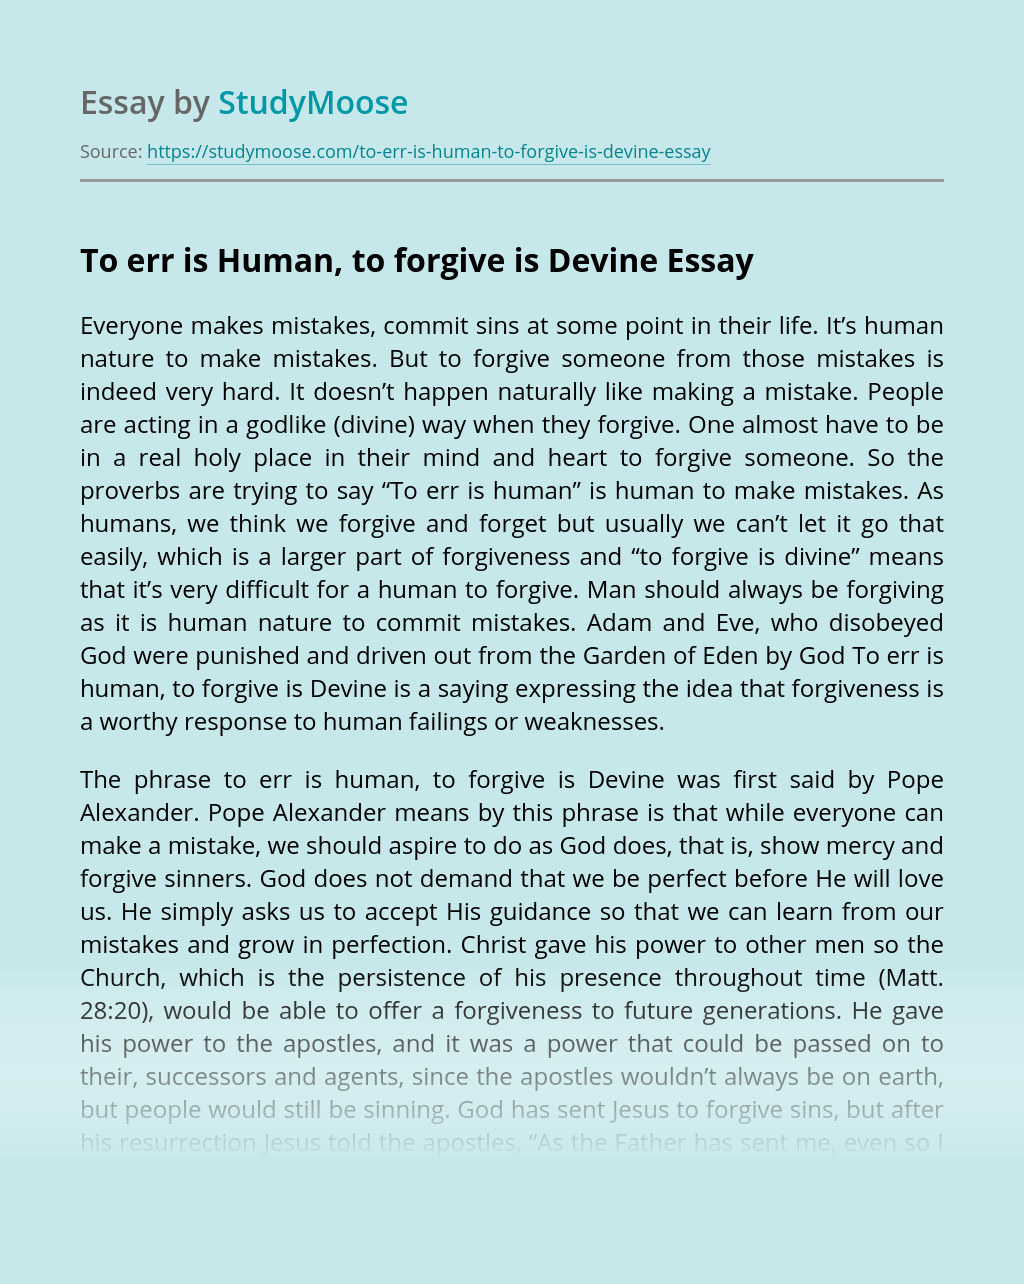 To err is Human, to forgive is Devine